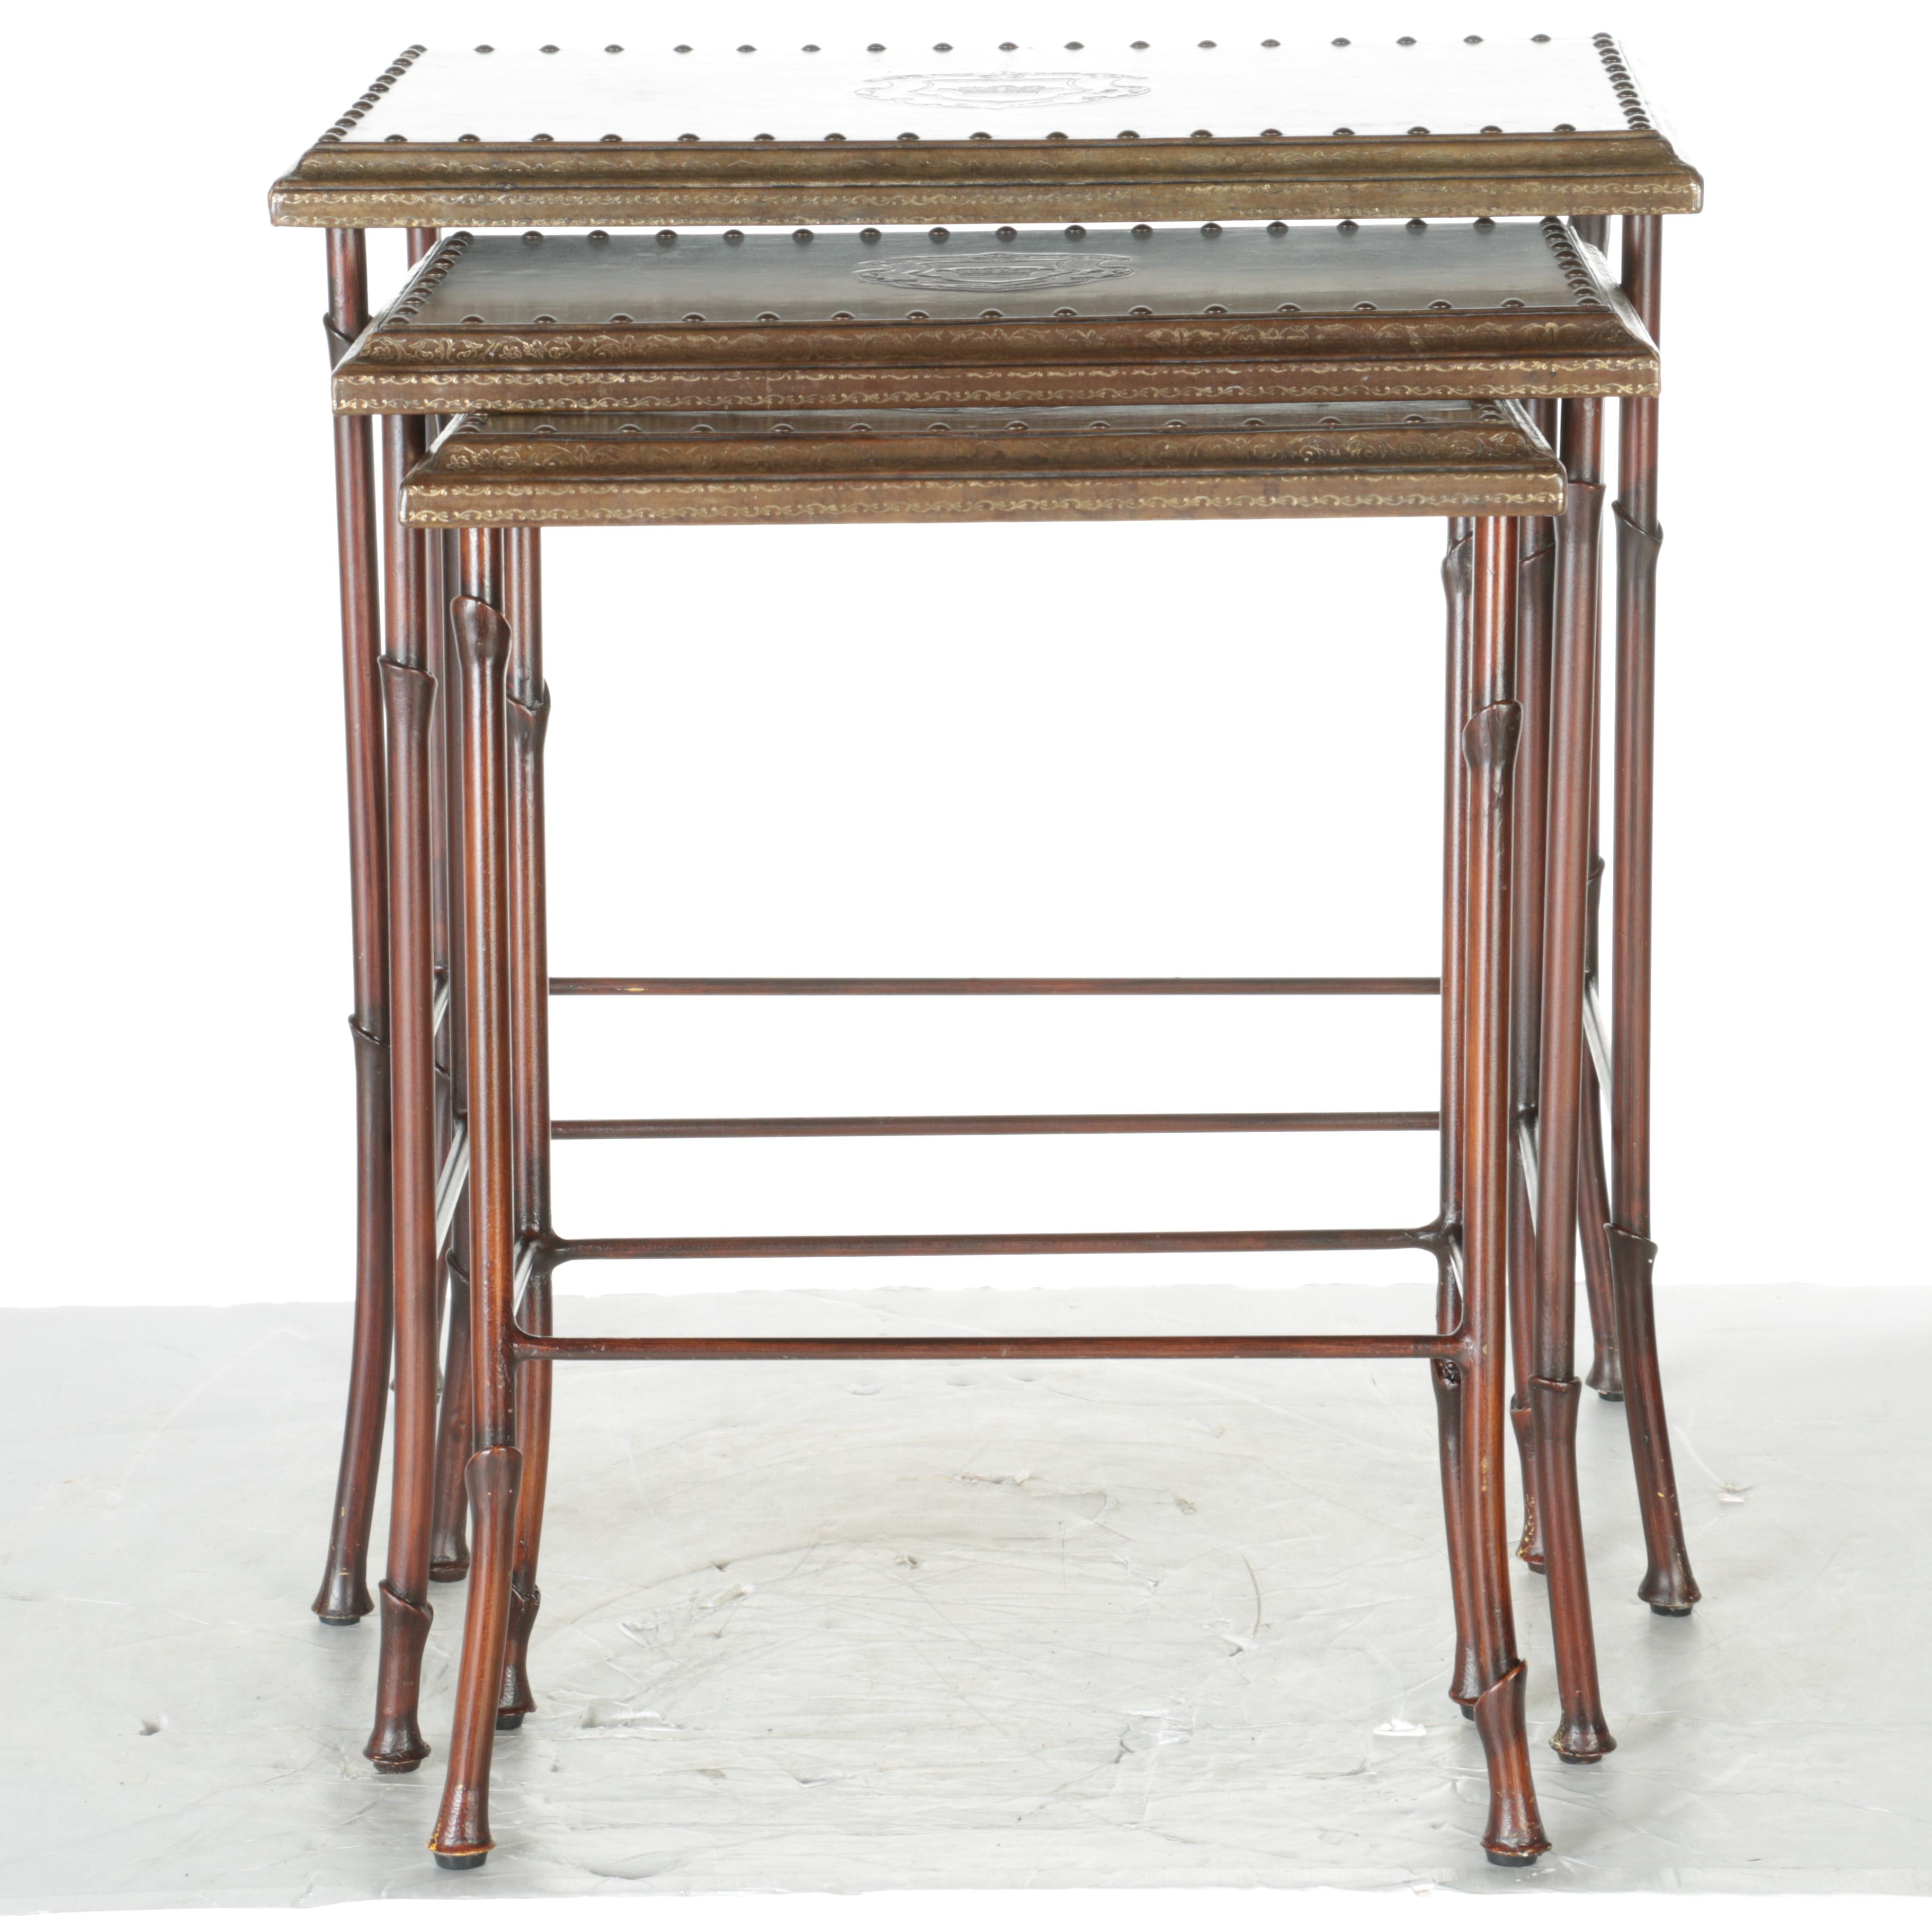 Three Wooden Nesting Tables With Leatherette Tops